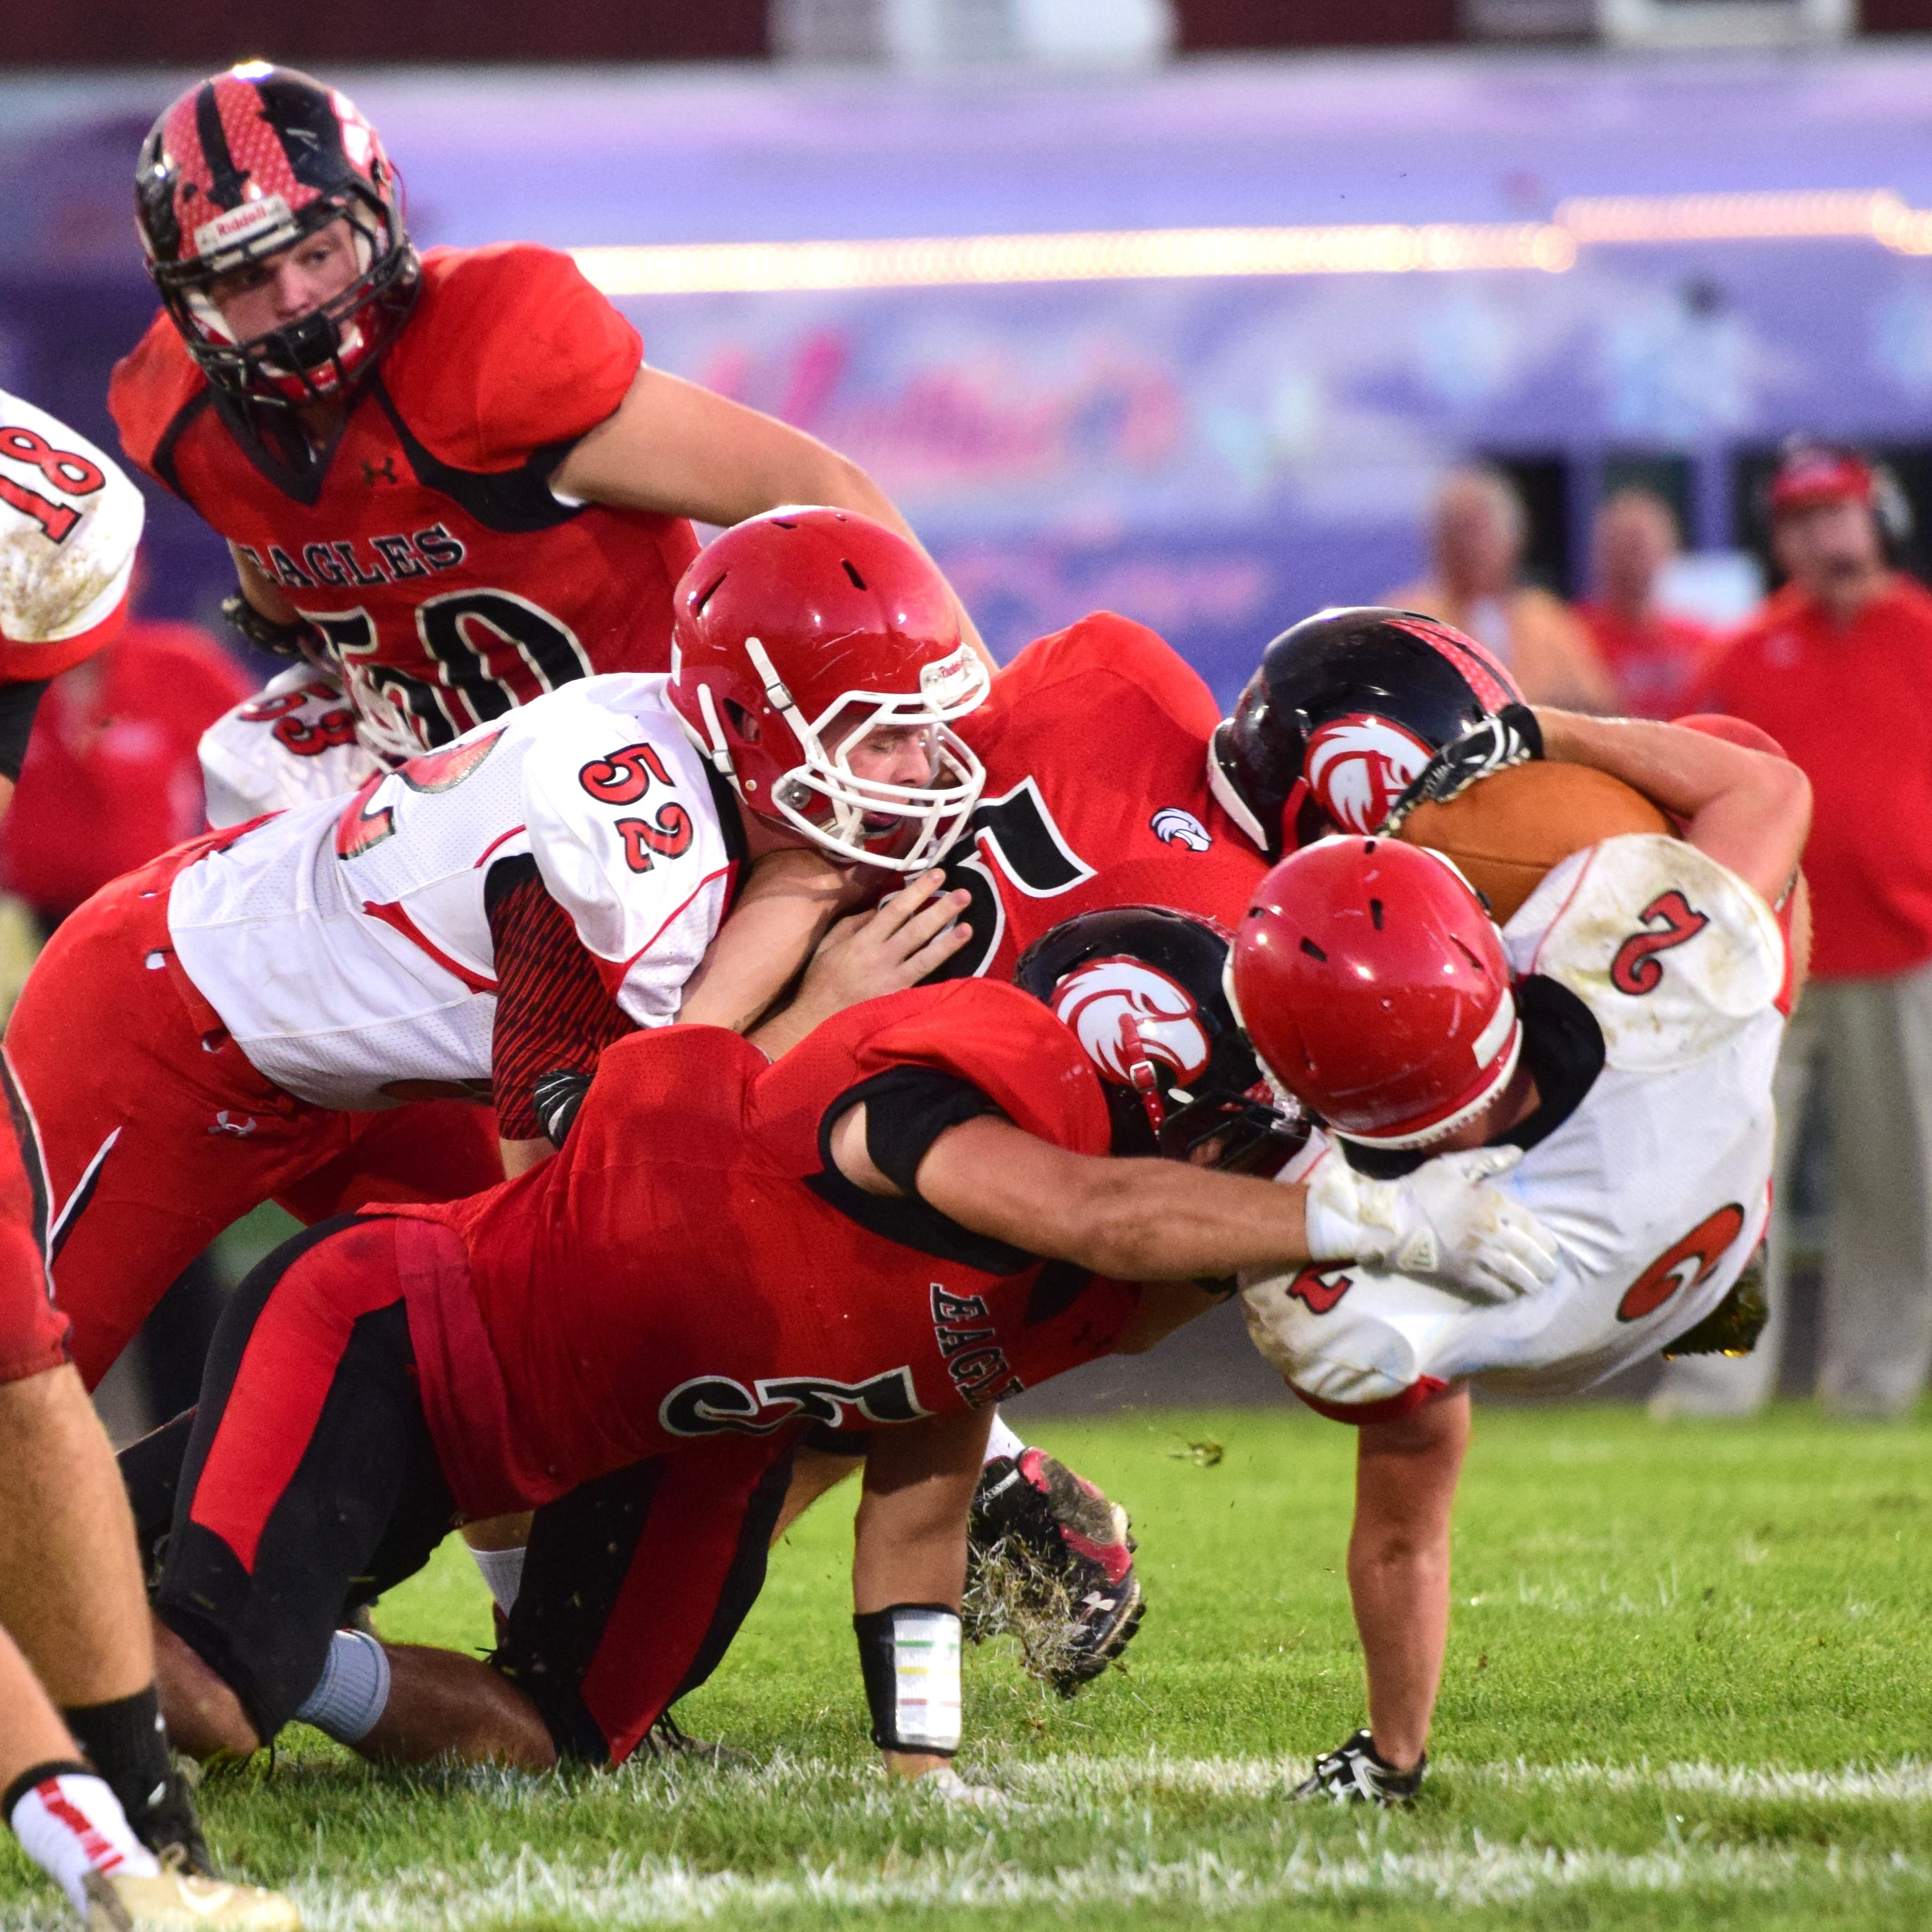 Riverheads' loss to East Rock definitely was an eye-opener